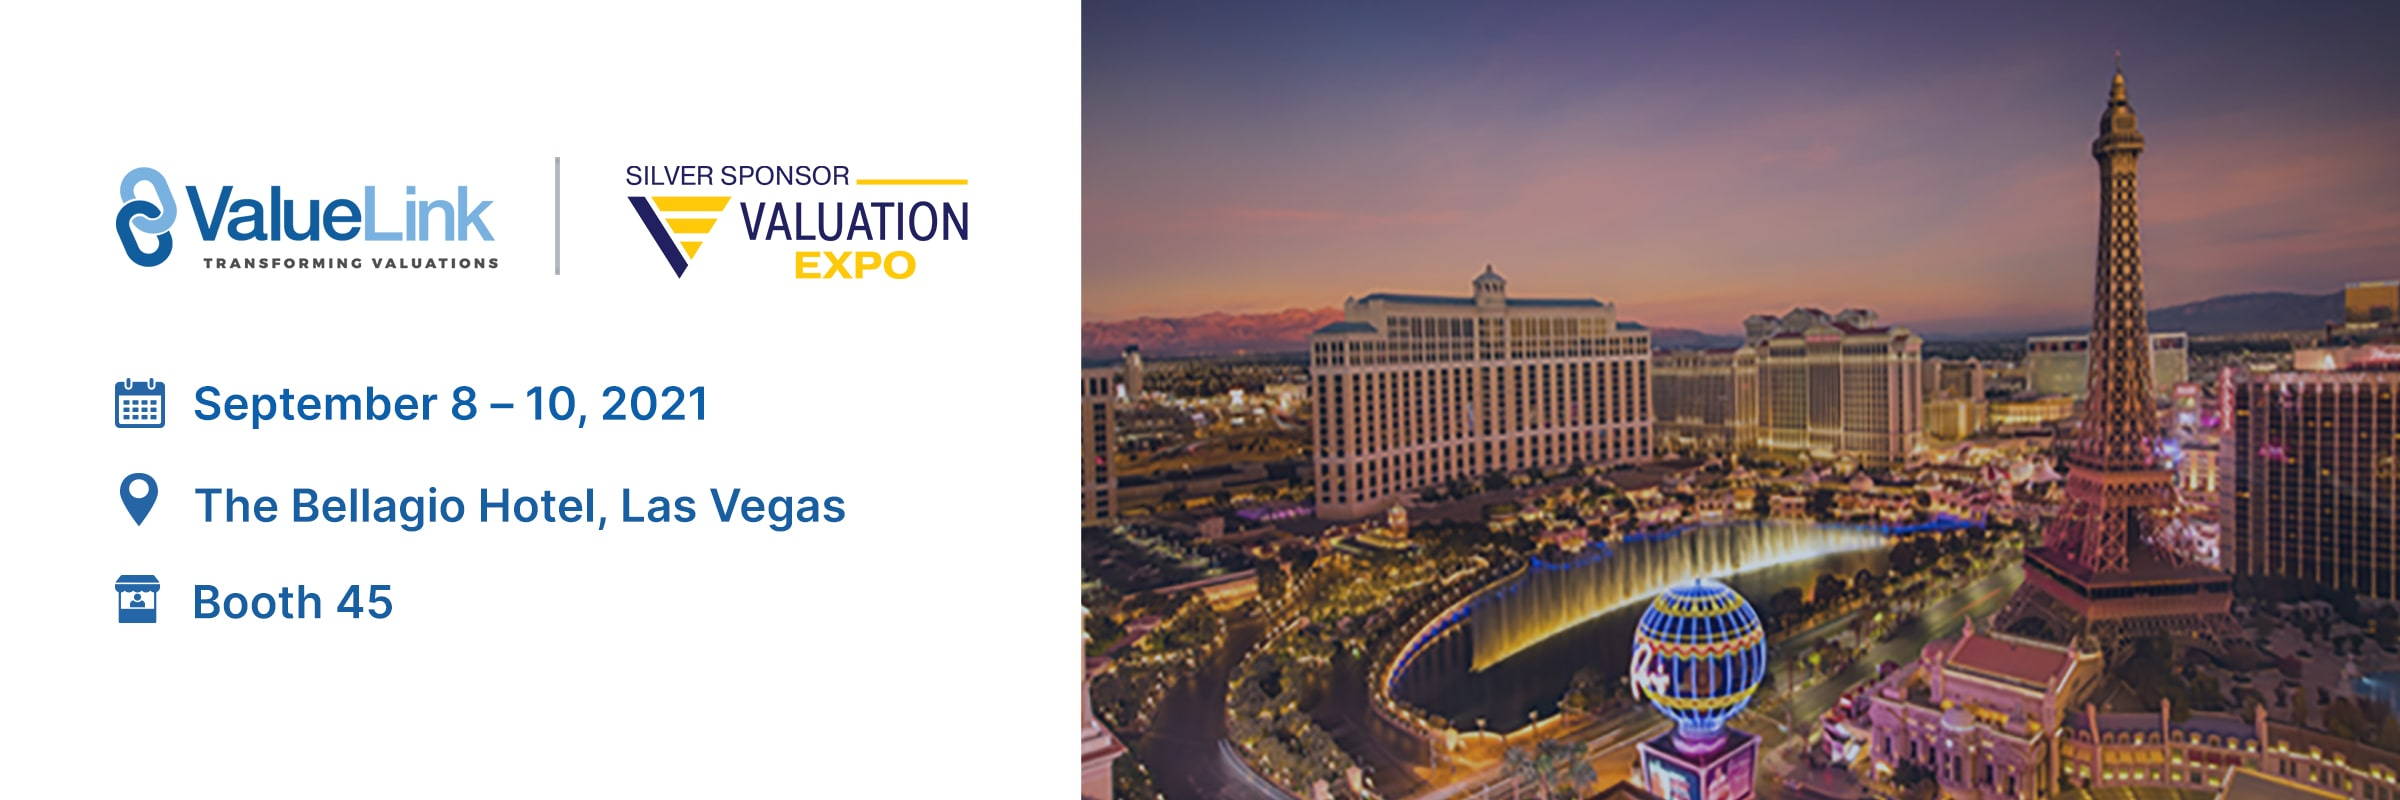 Valuation Expo Sept. 8th – 10th, 2021.